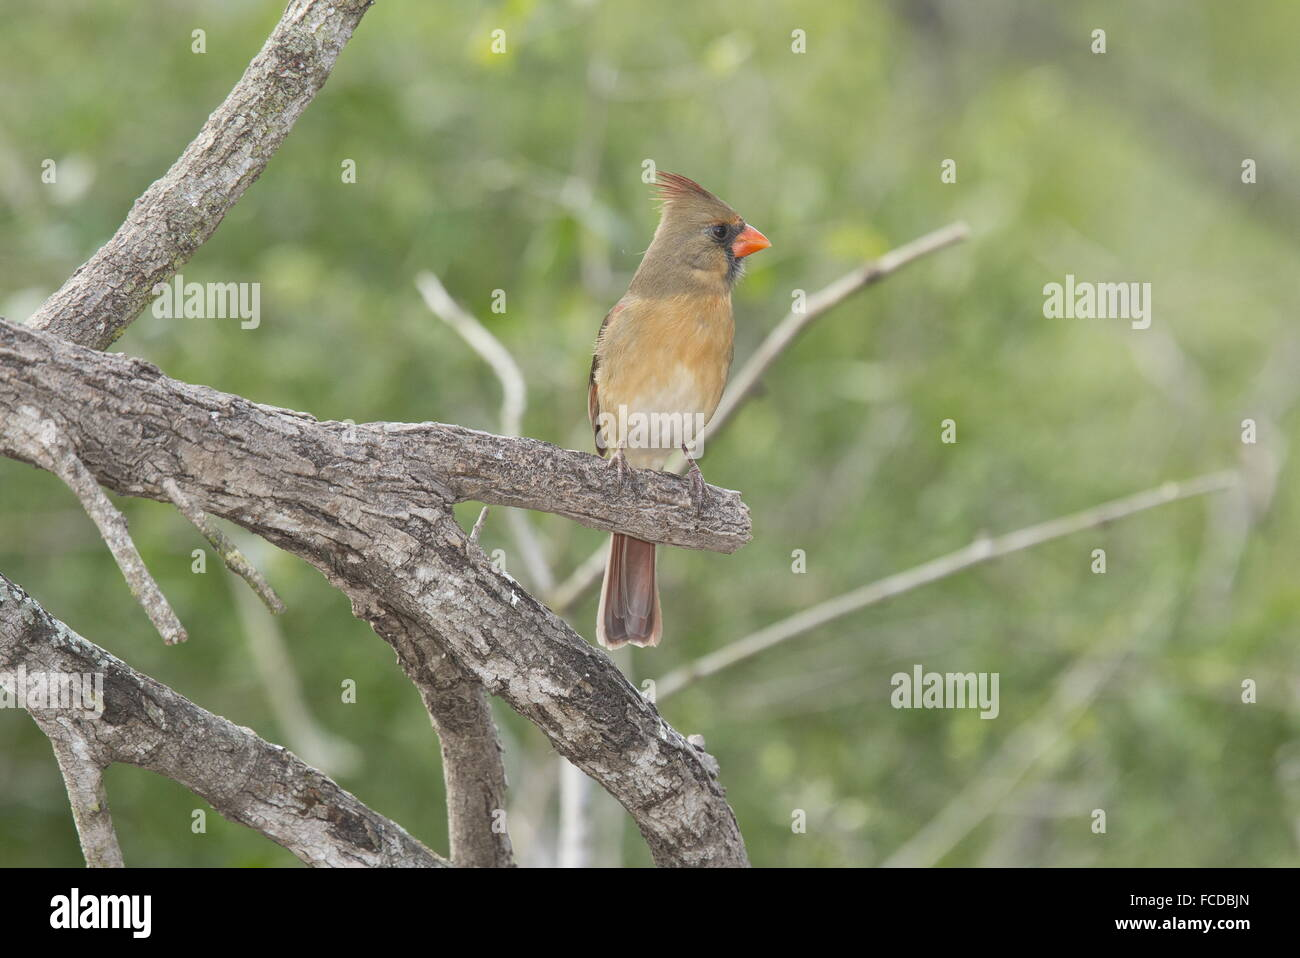 Female Northern Cardinal, Cardinalis cardinalis on branch, Texas. Stock Photo